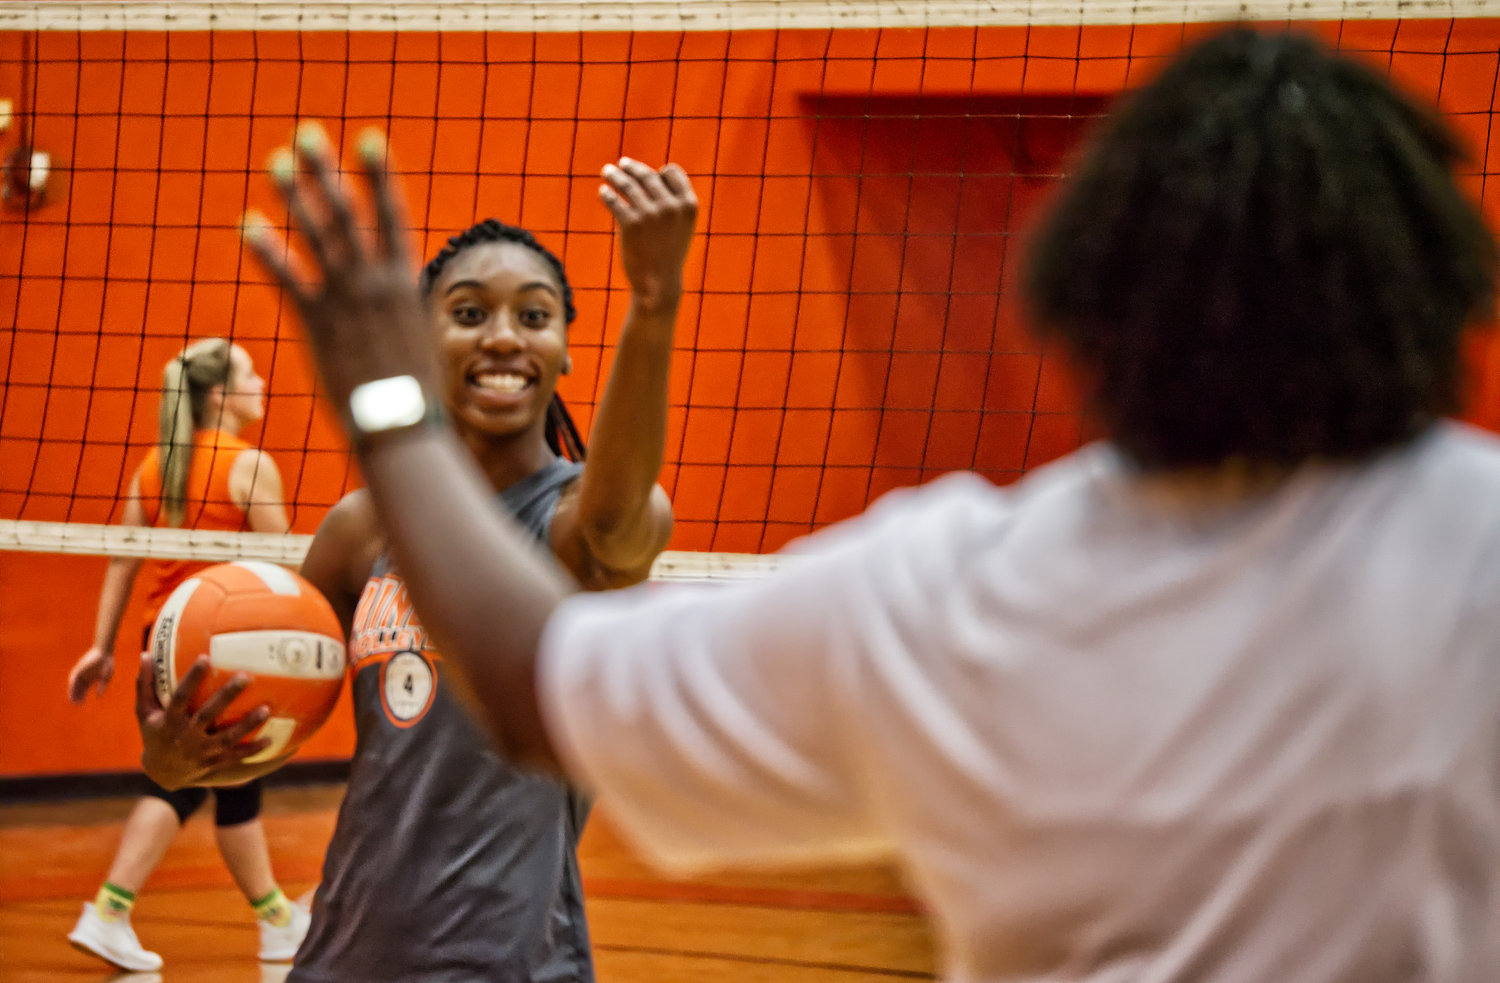 Mineola volleyball player Tahjae Black confirms she understands coach TaShara Everett.